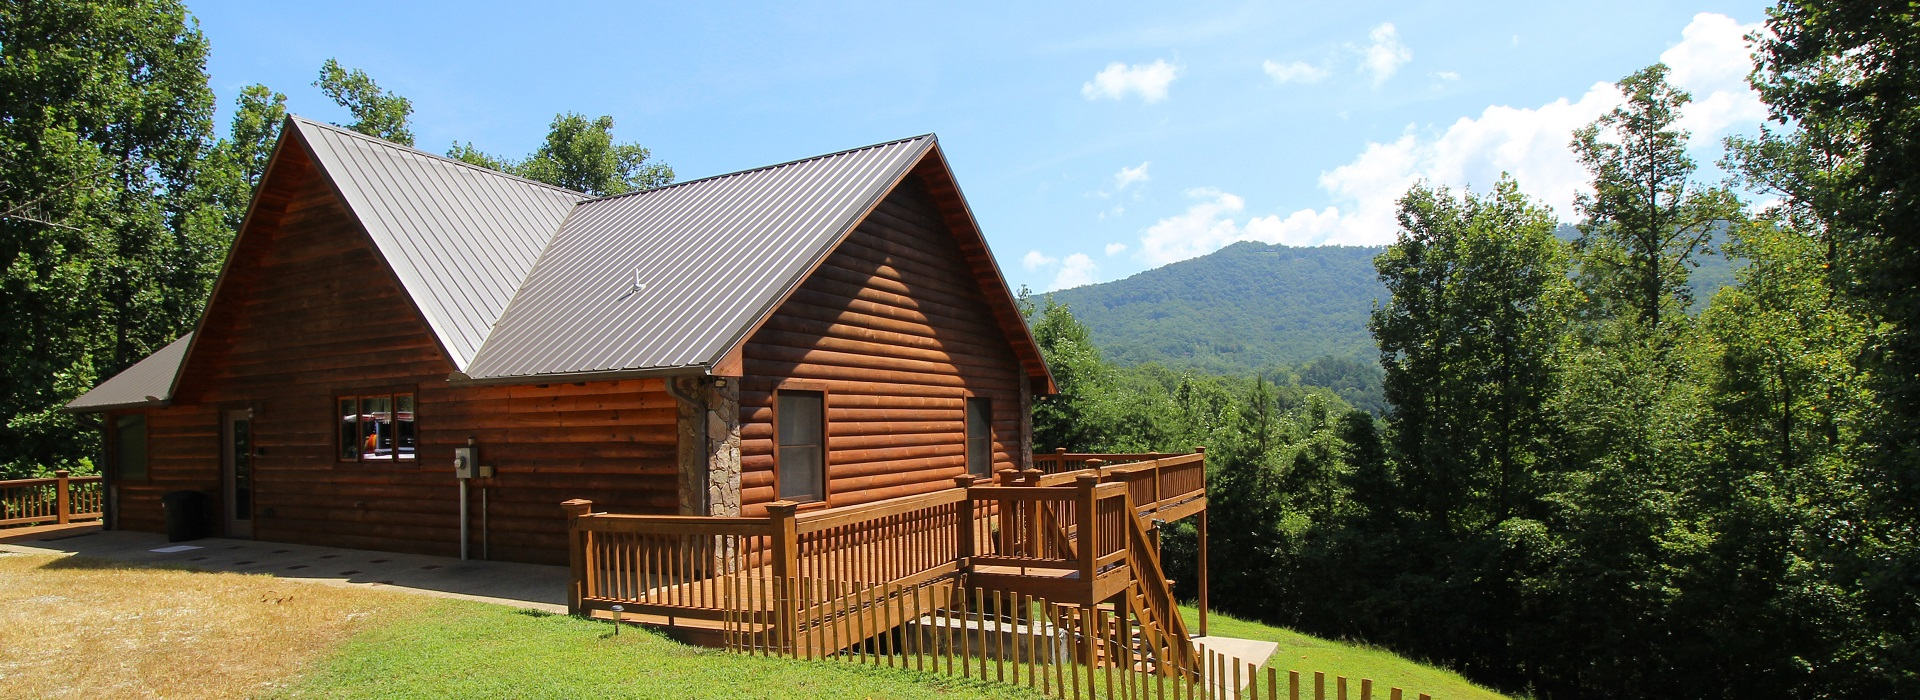 cabin in an james rental getaway play want living amazing experience working carolina weekend rentals cabins to nc mountain north lake